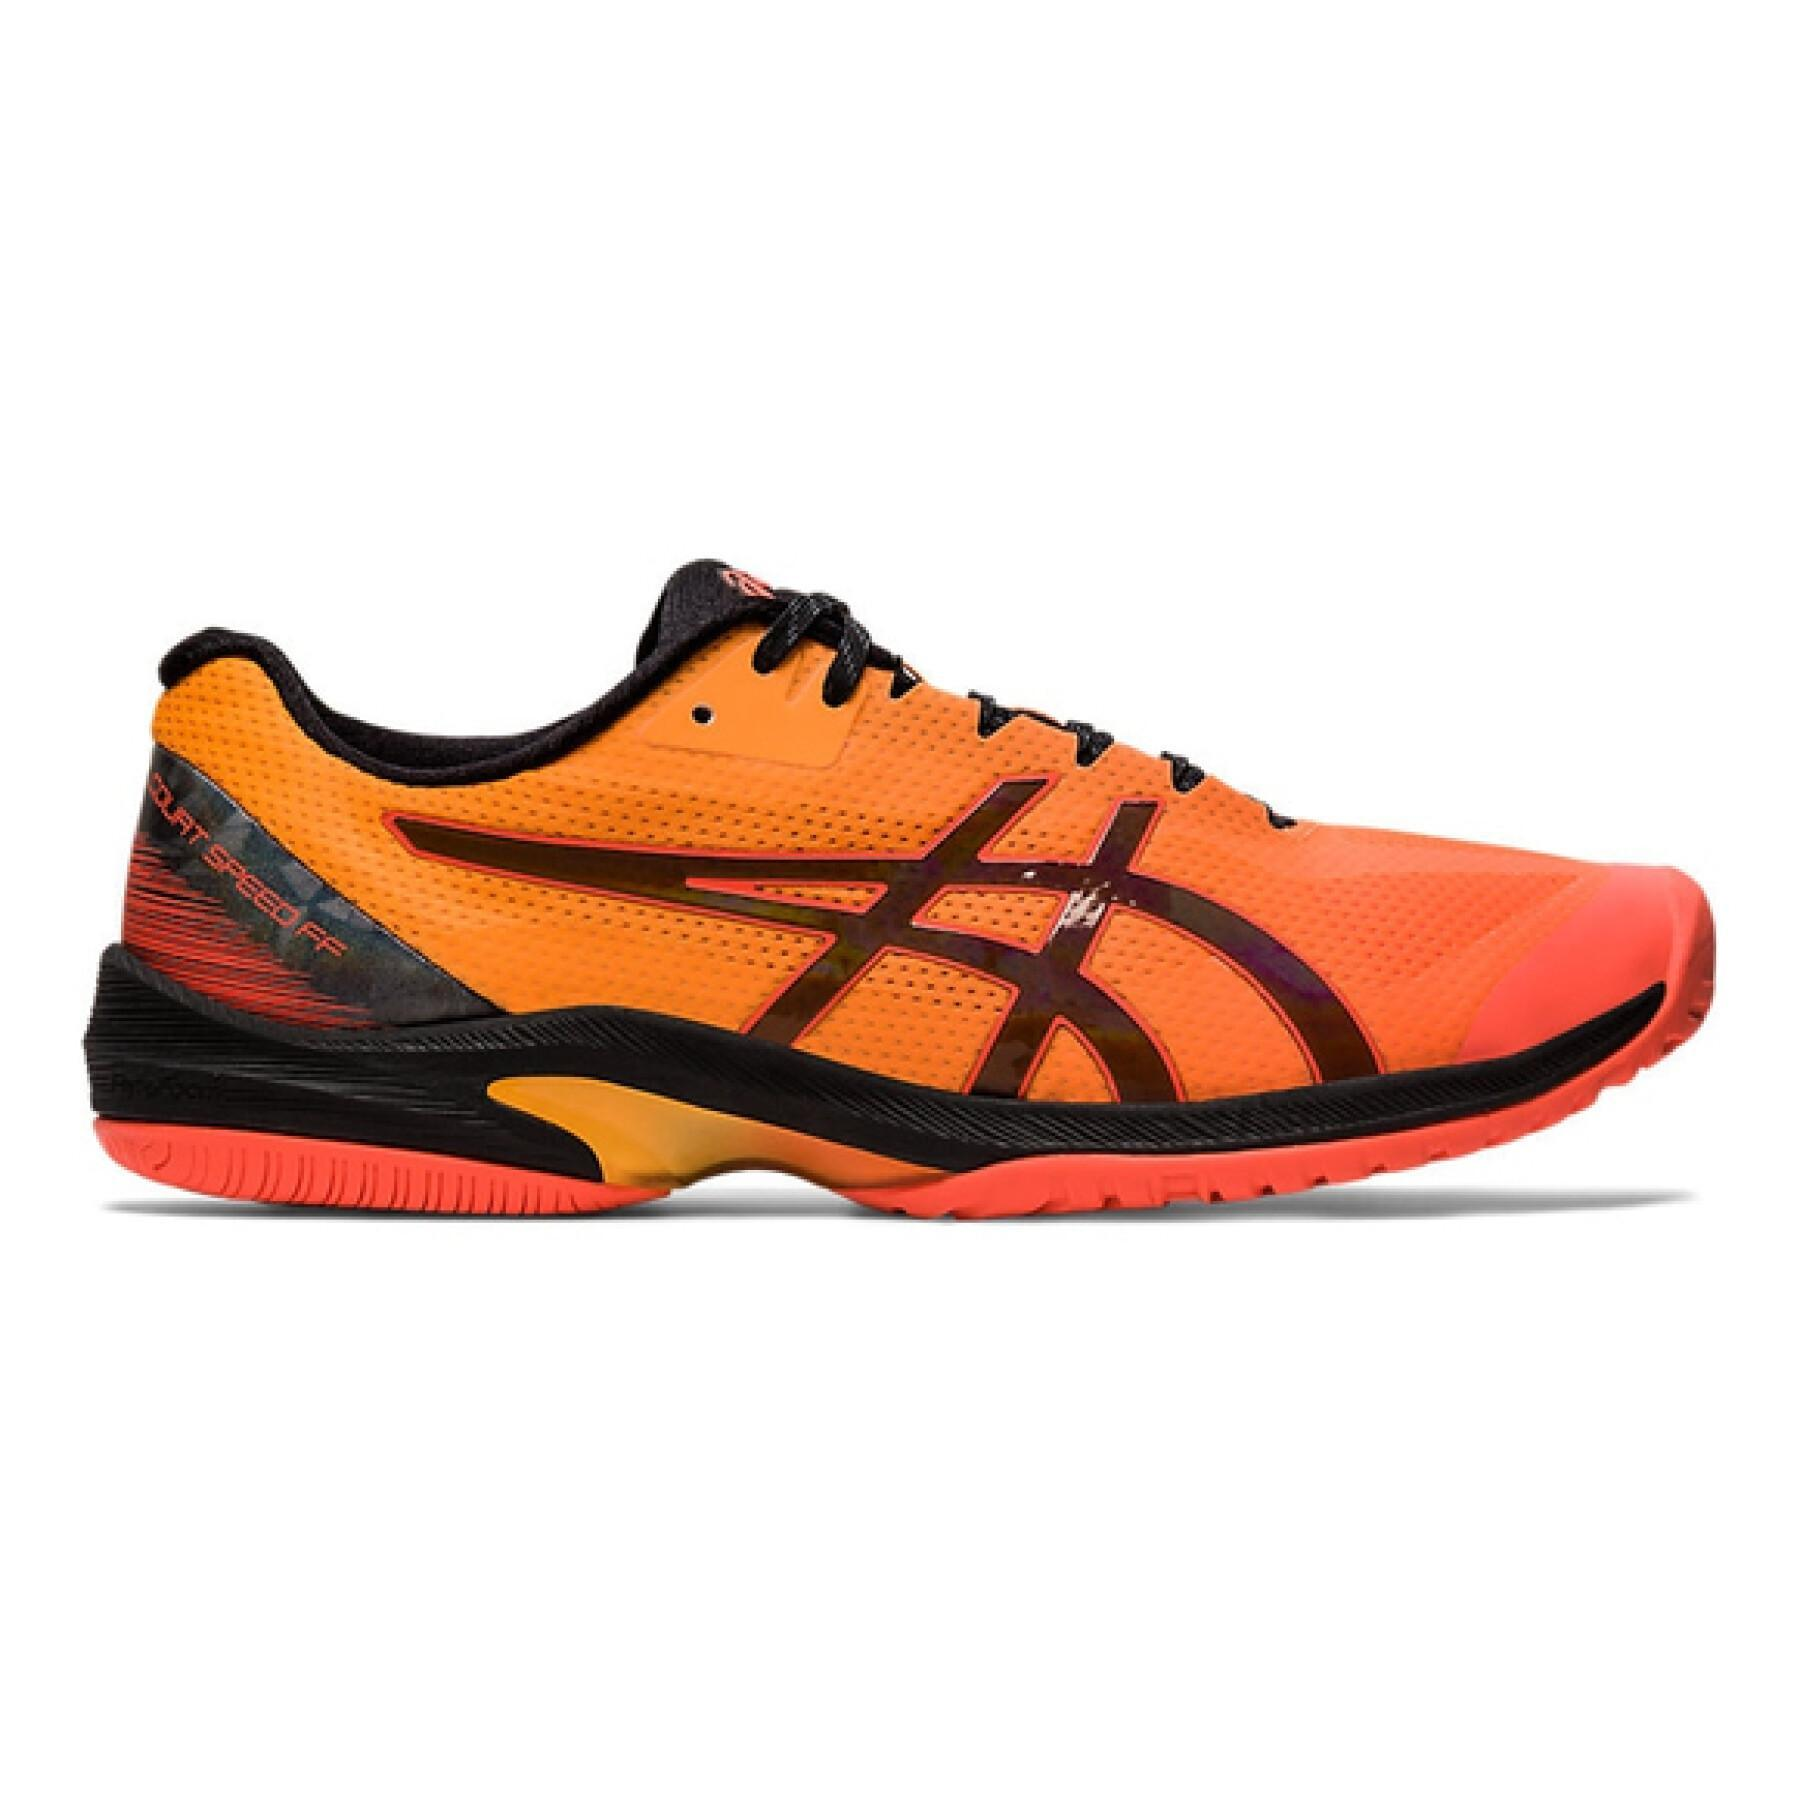 Asics Court Speed FF L.E. Shoes